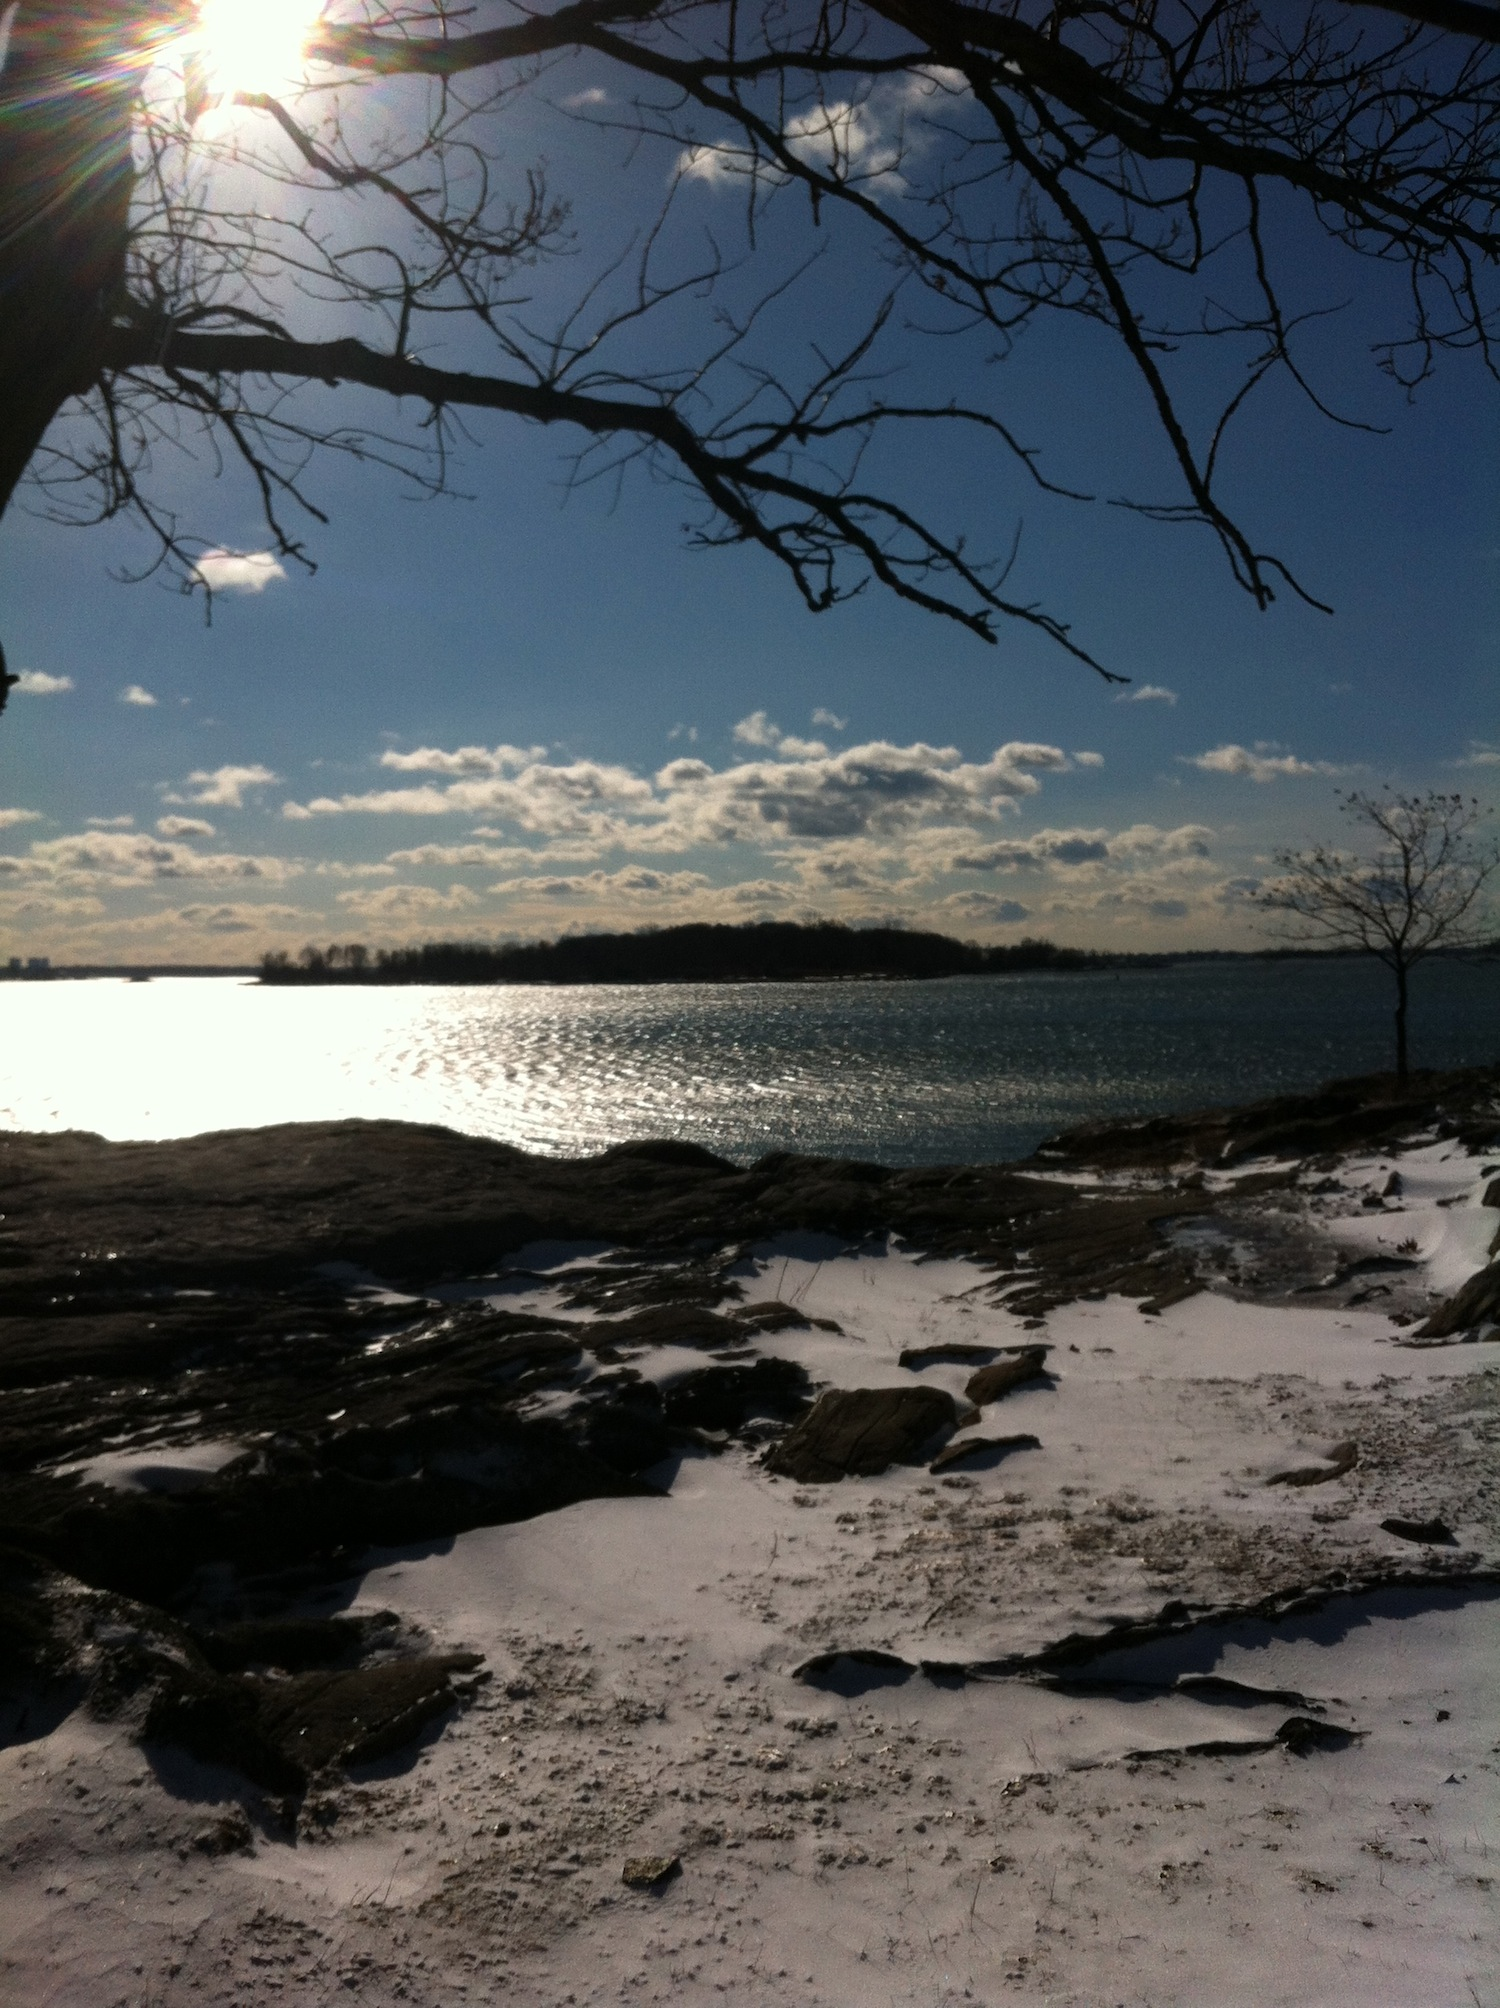 Photo by Alex Winter of a view of snow overlooking water